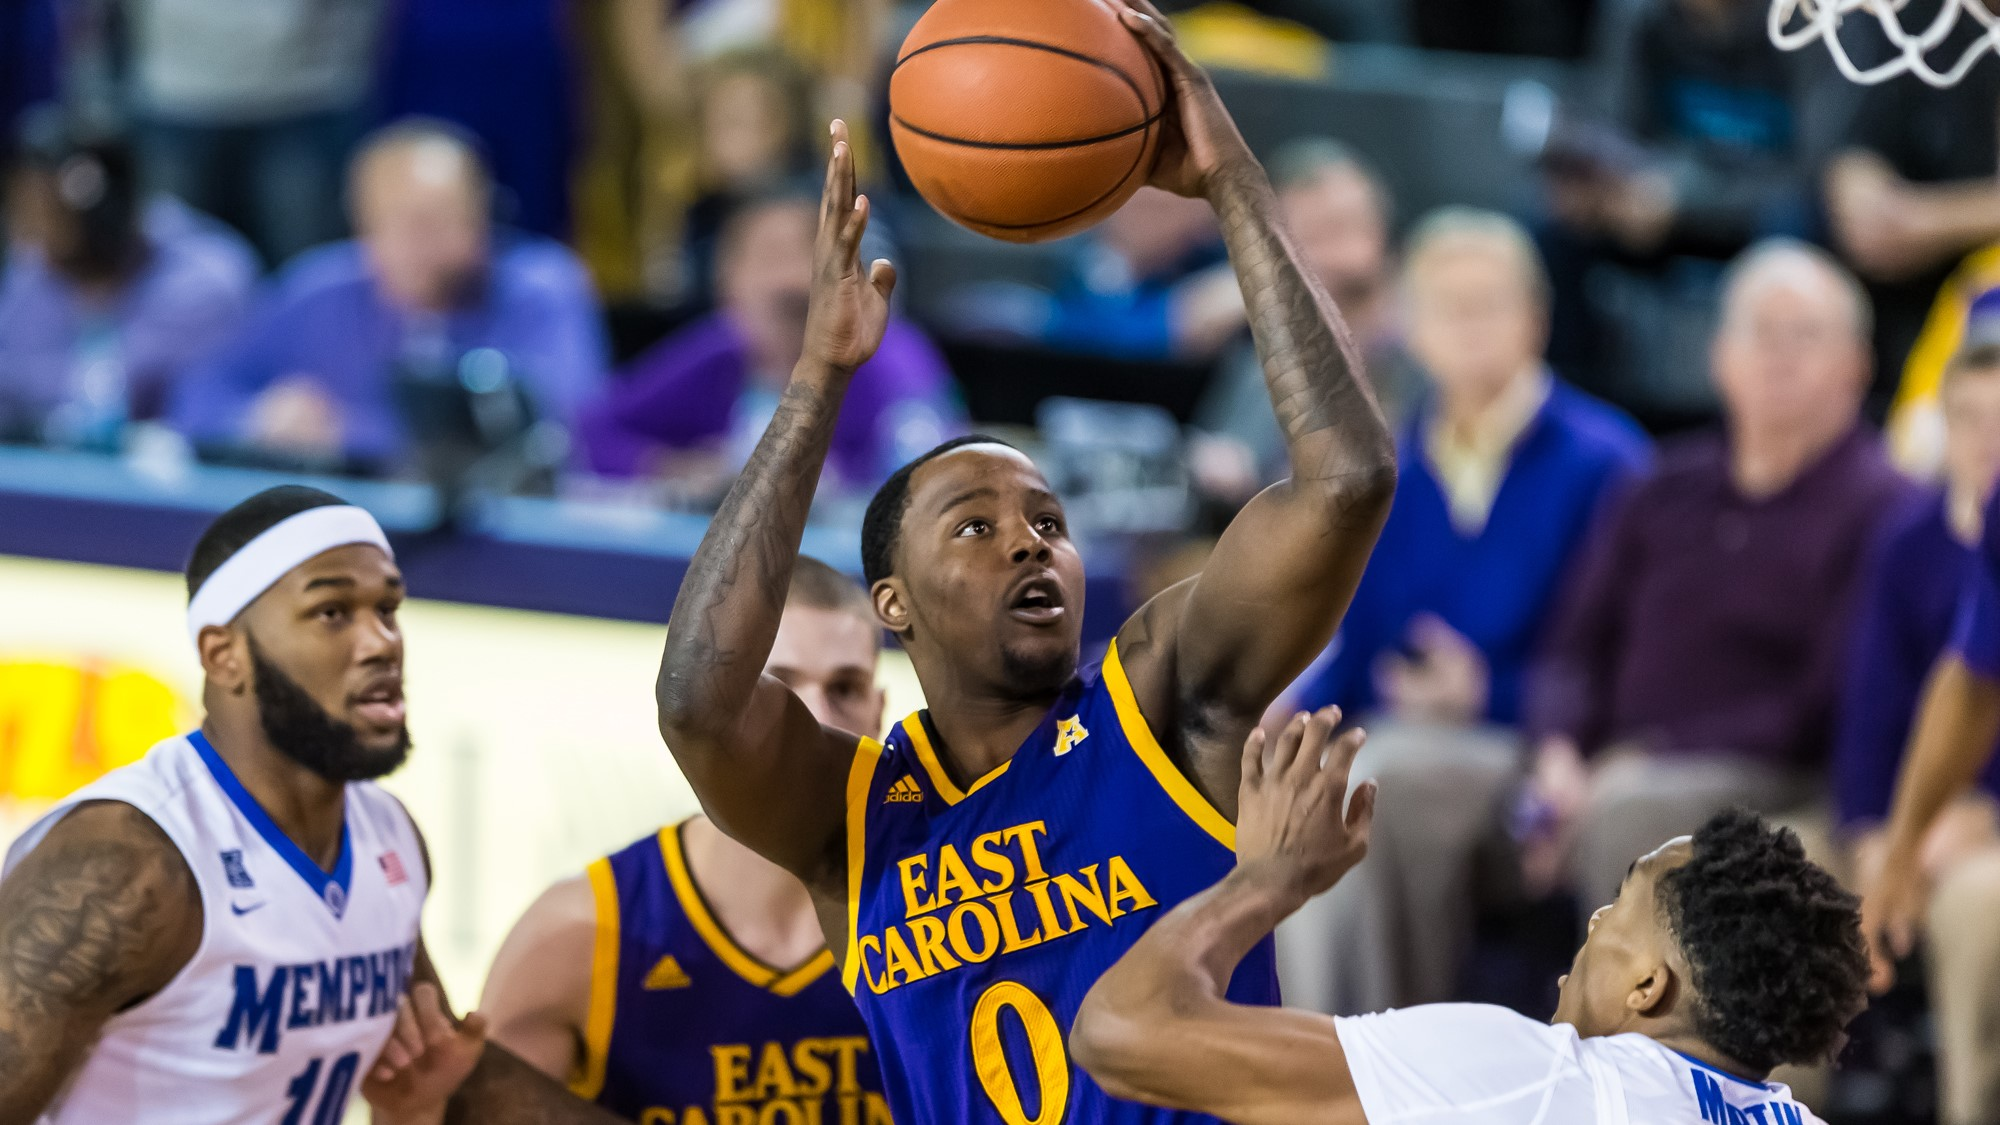 bf548ad2f ECU Reveals 2018-19 Men s Basketball Schedule - East Carolina ...